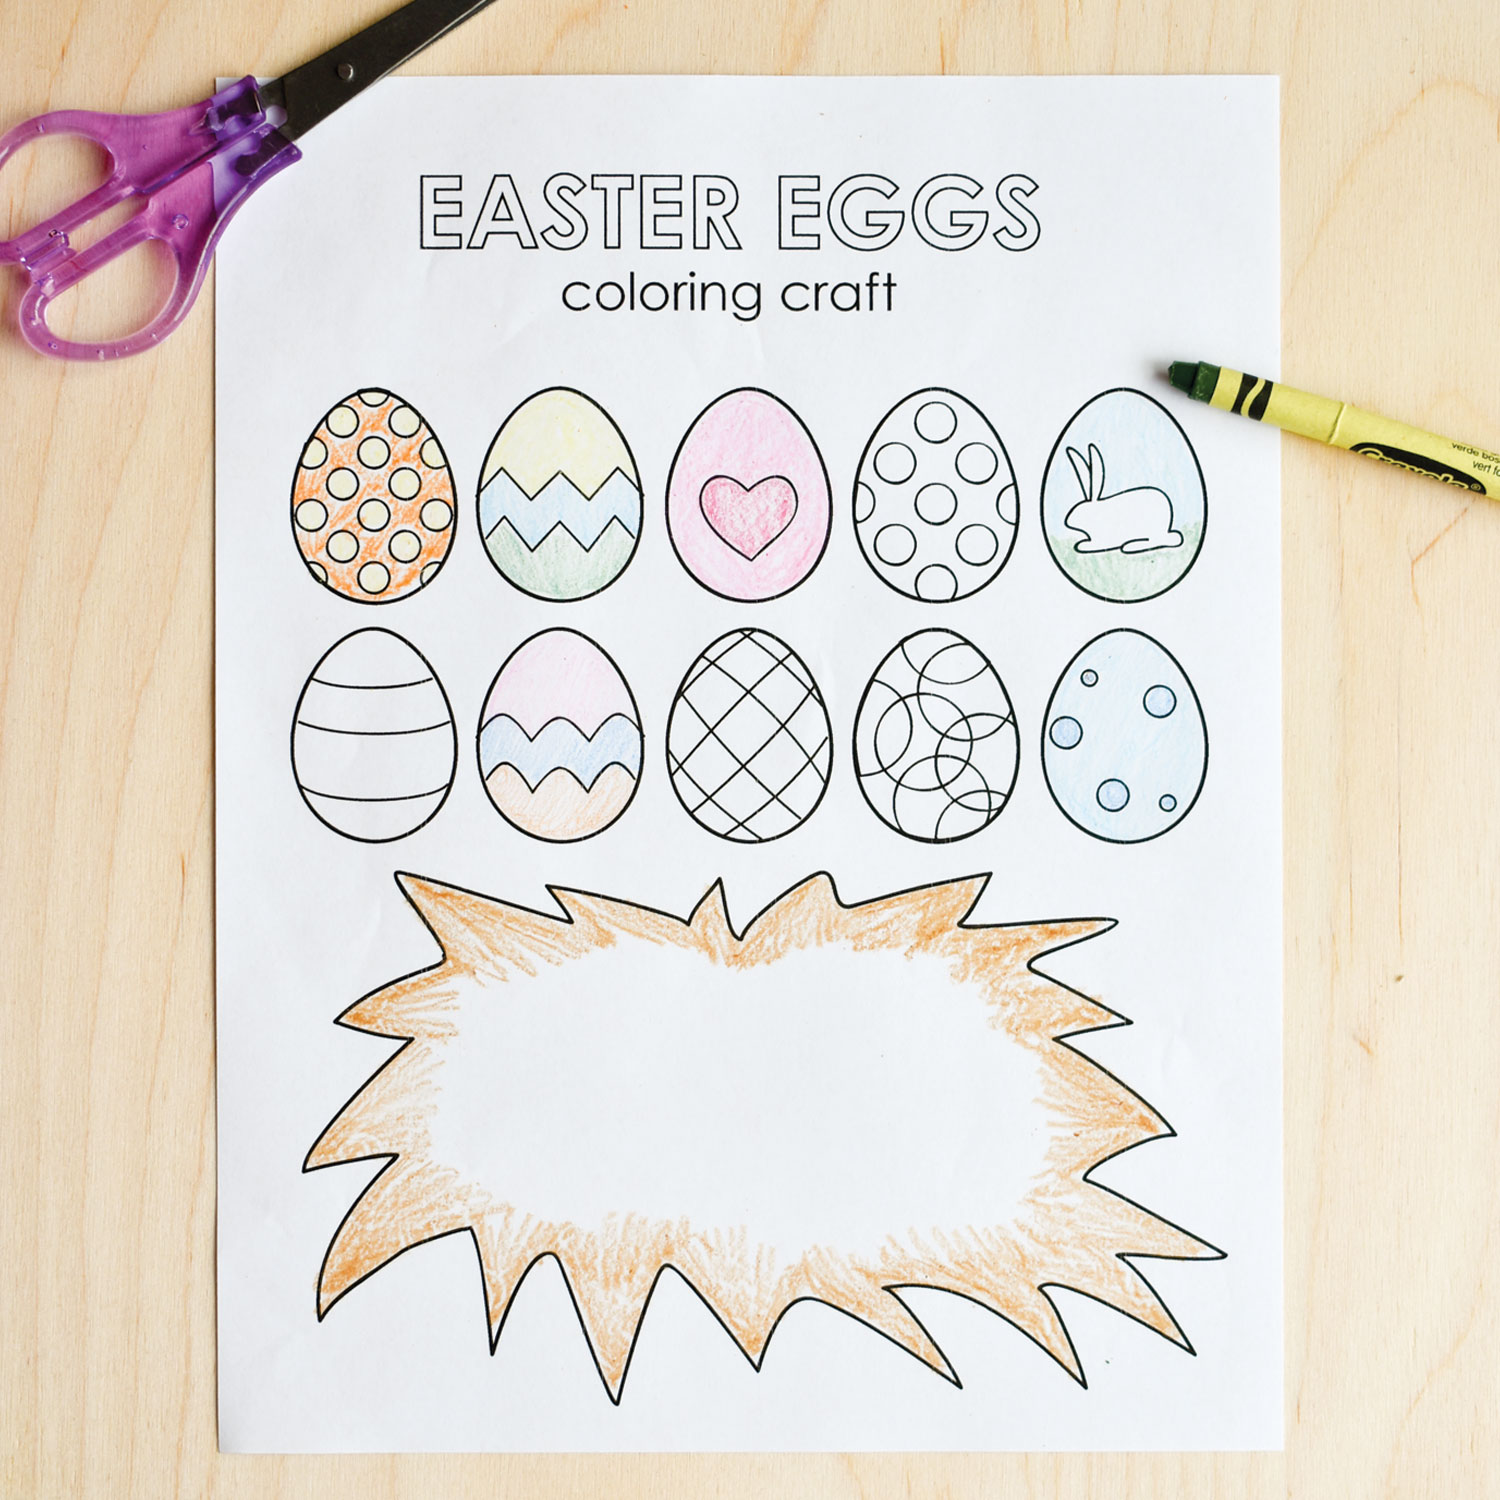 coloring egg designs, bunny craft